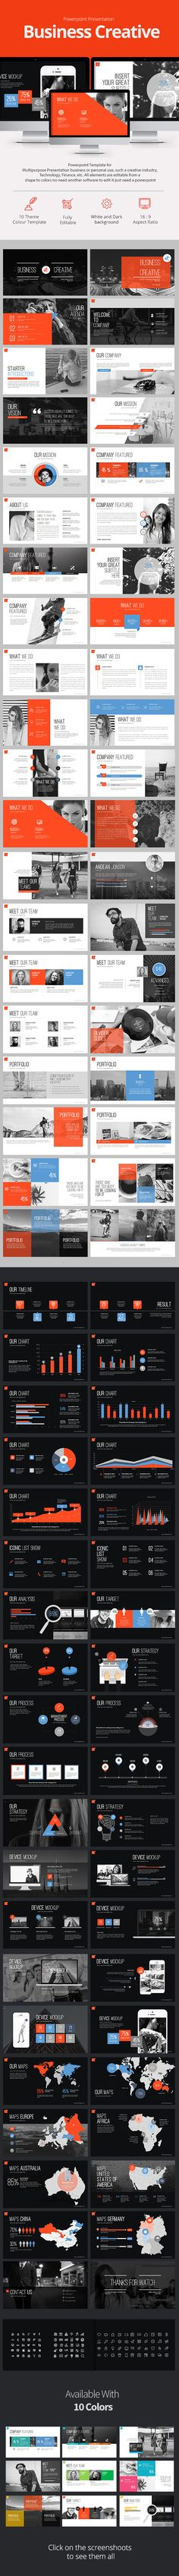 Business Creative PowerPoint Template. Download here: https://graphicriver.net/item/business-creative-powerpoint-template-/17329212?ref=ksioks